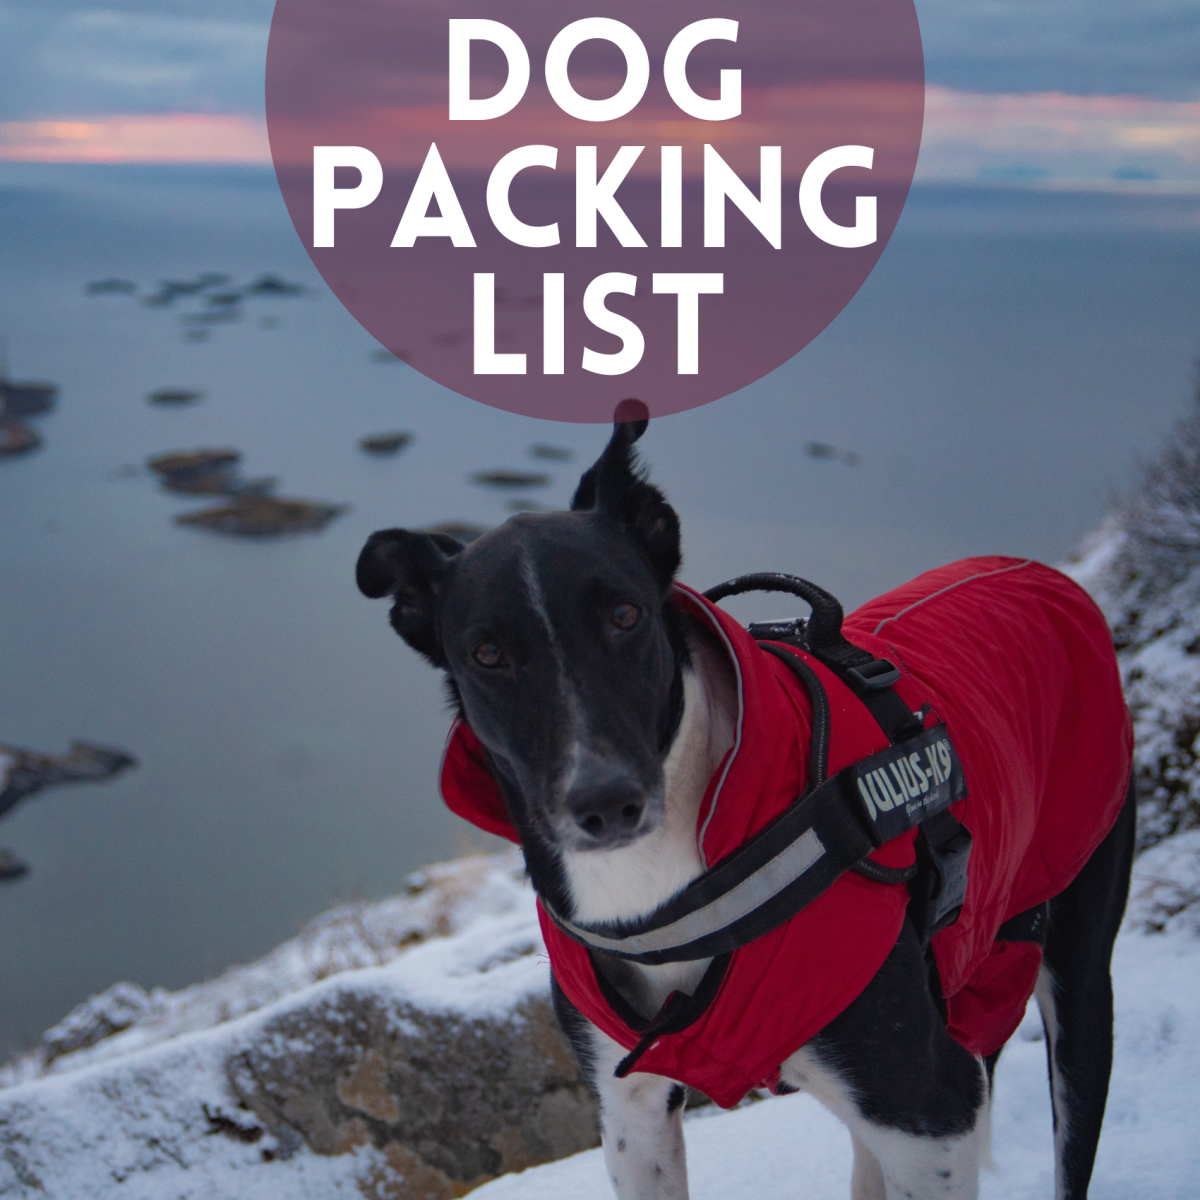 A list of things to pack for your dog for a camping or hiking trip.